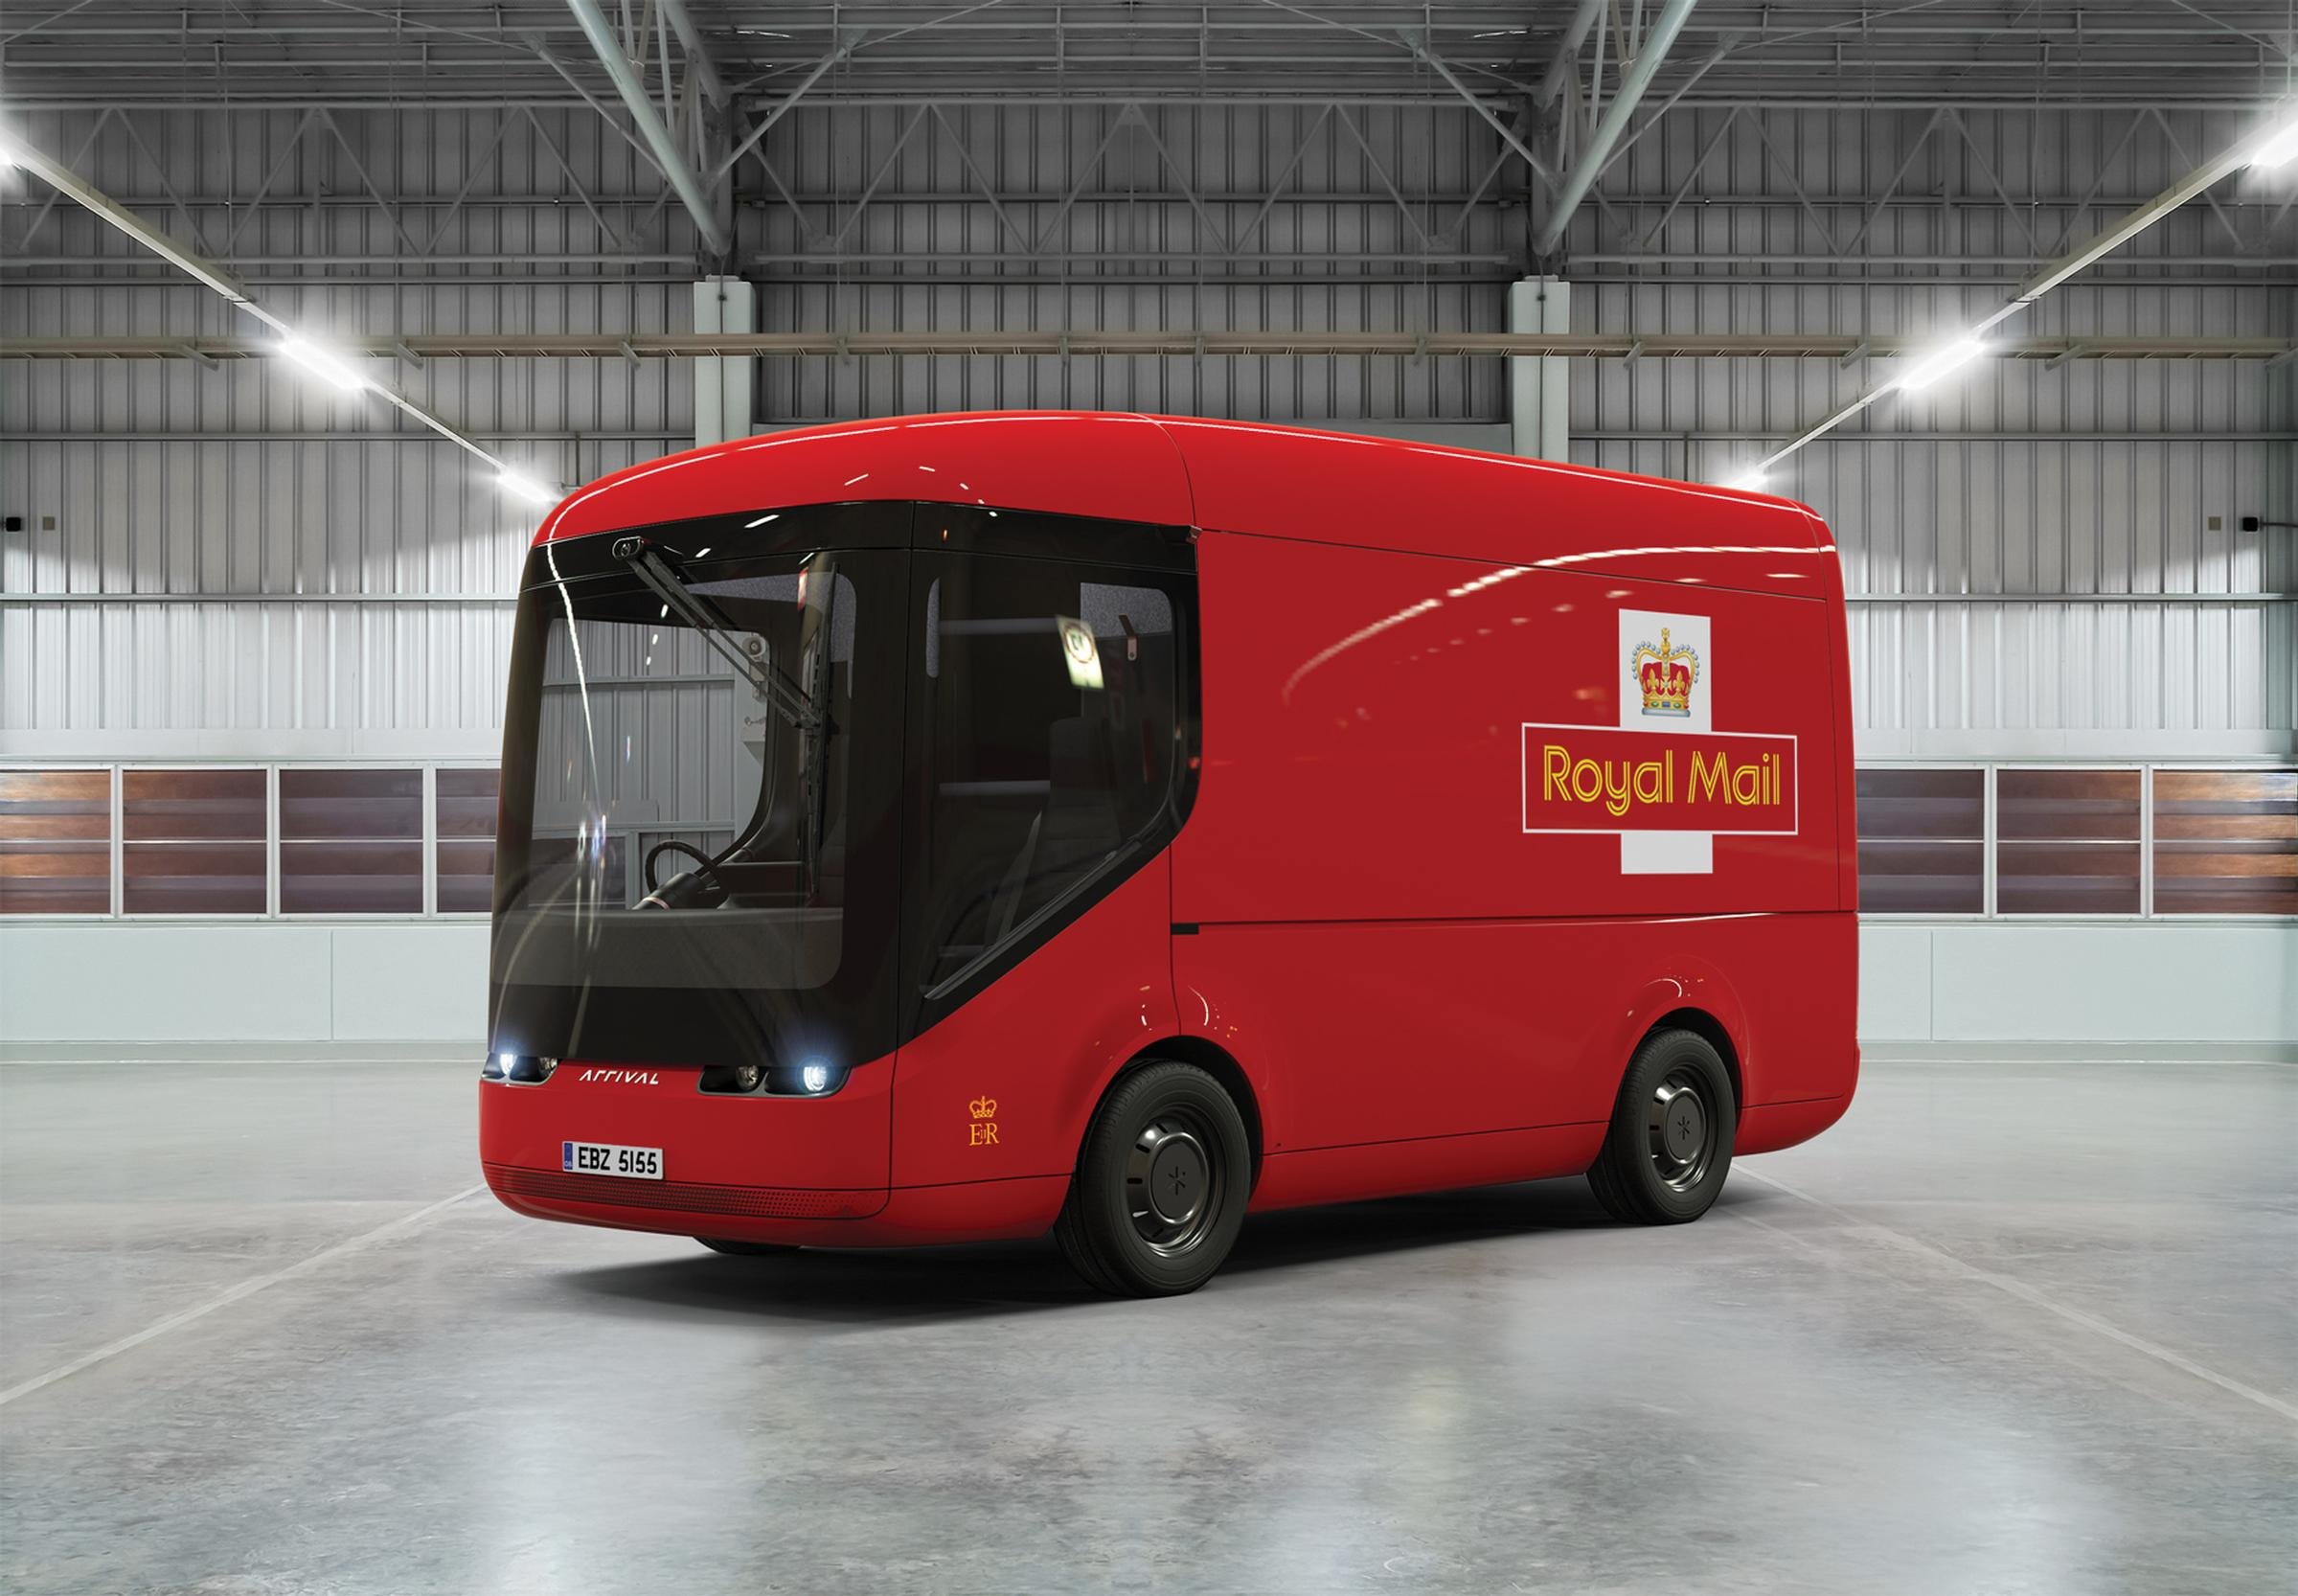 The Royal Mail has ordered electric vans from Arrival, which has a factory in Banbury. Arrival is also involved in Oxfordshire's vehicle-to-grid project and an autonomous vehicle trial near Didcot